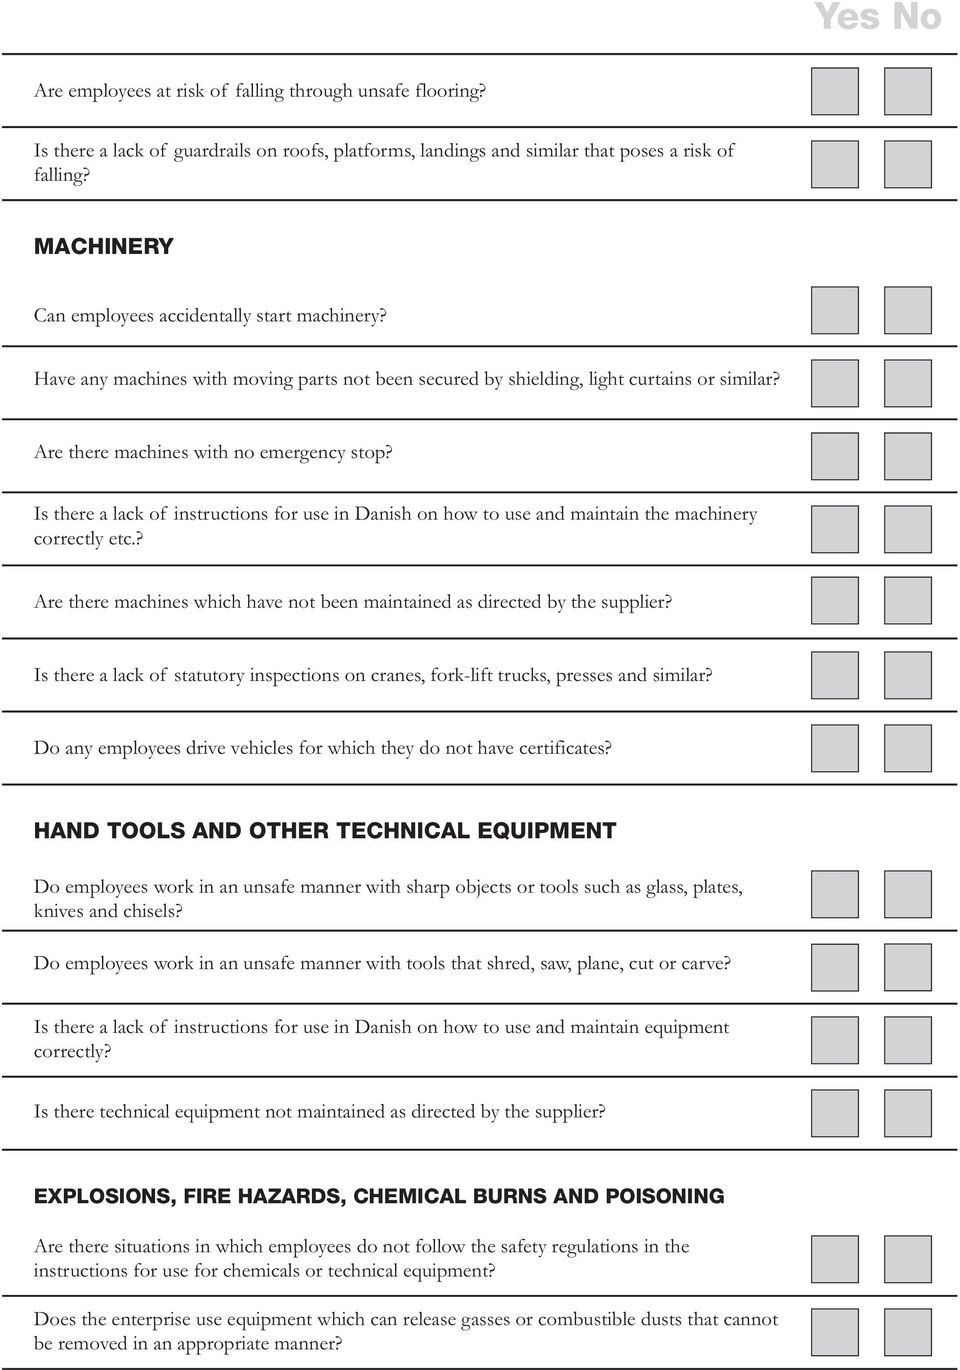 Is there a lack of instructions for use in Danish on how to use and maintain the machinery correctly etc.? Are there machines which have not been maintained as directed by the supplier?